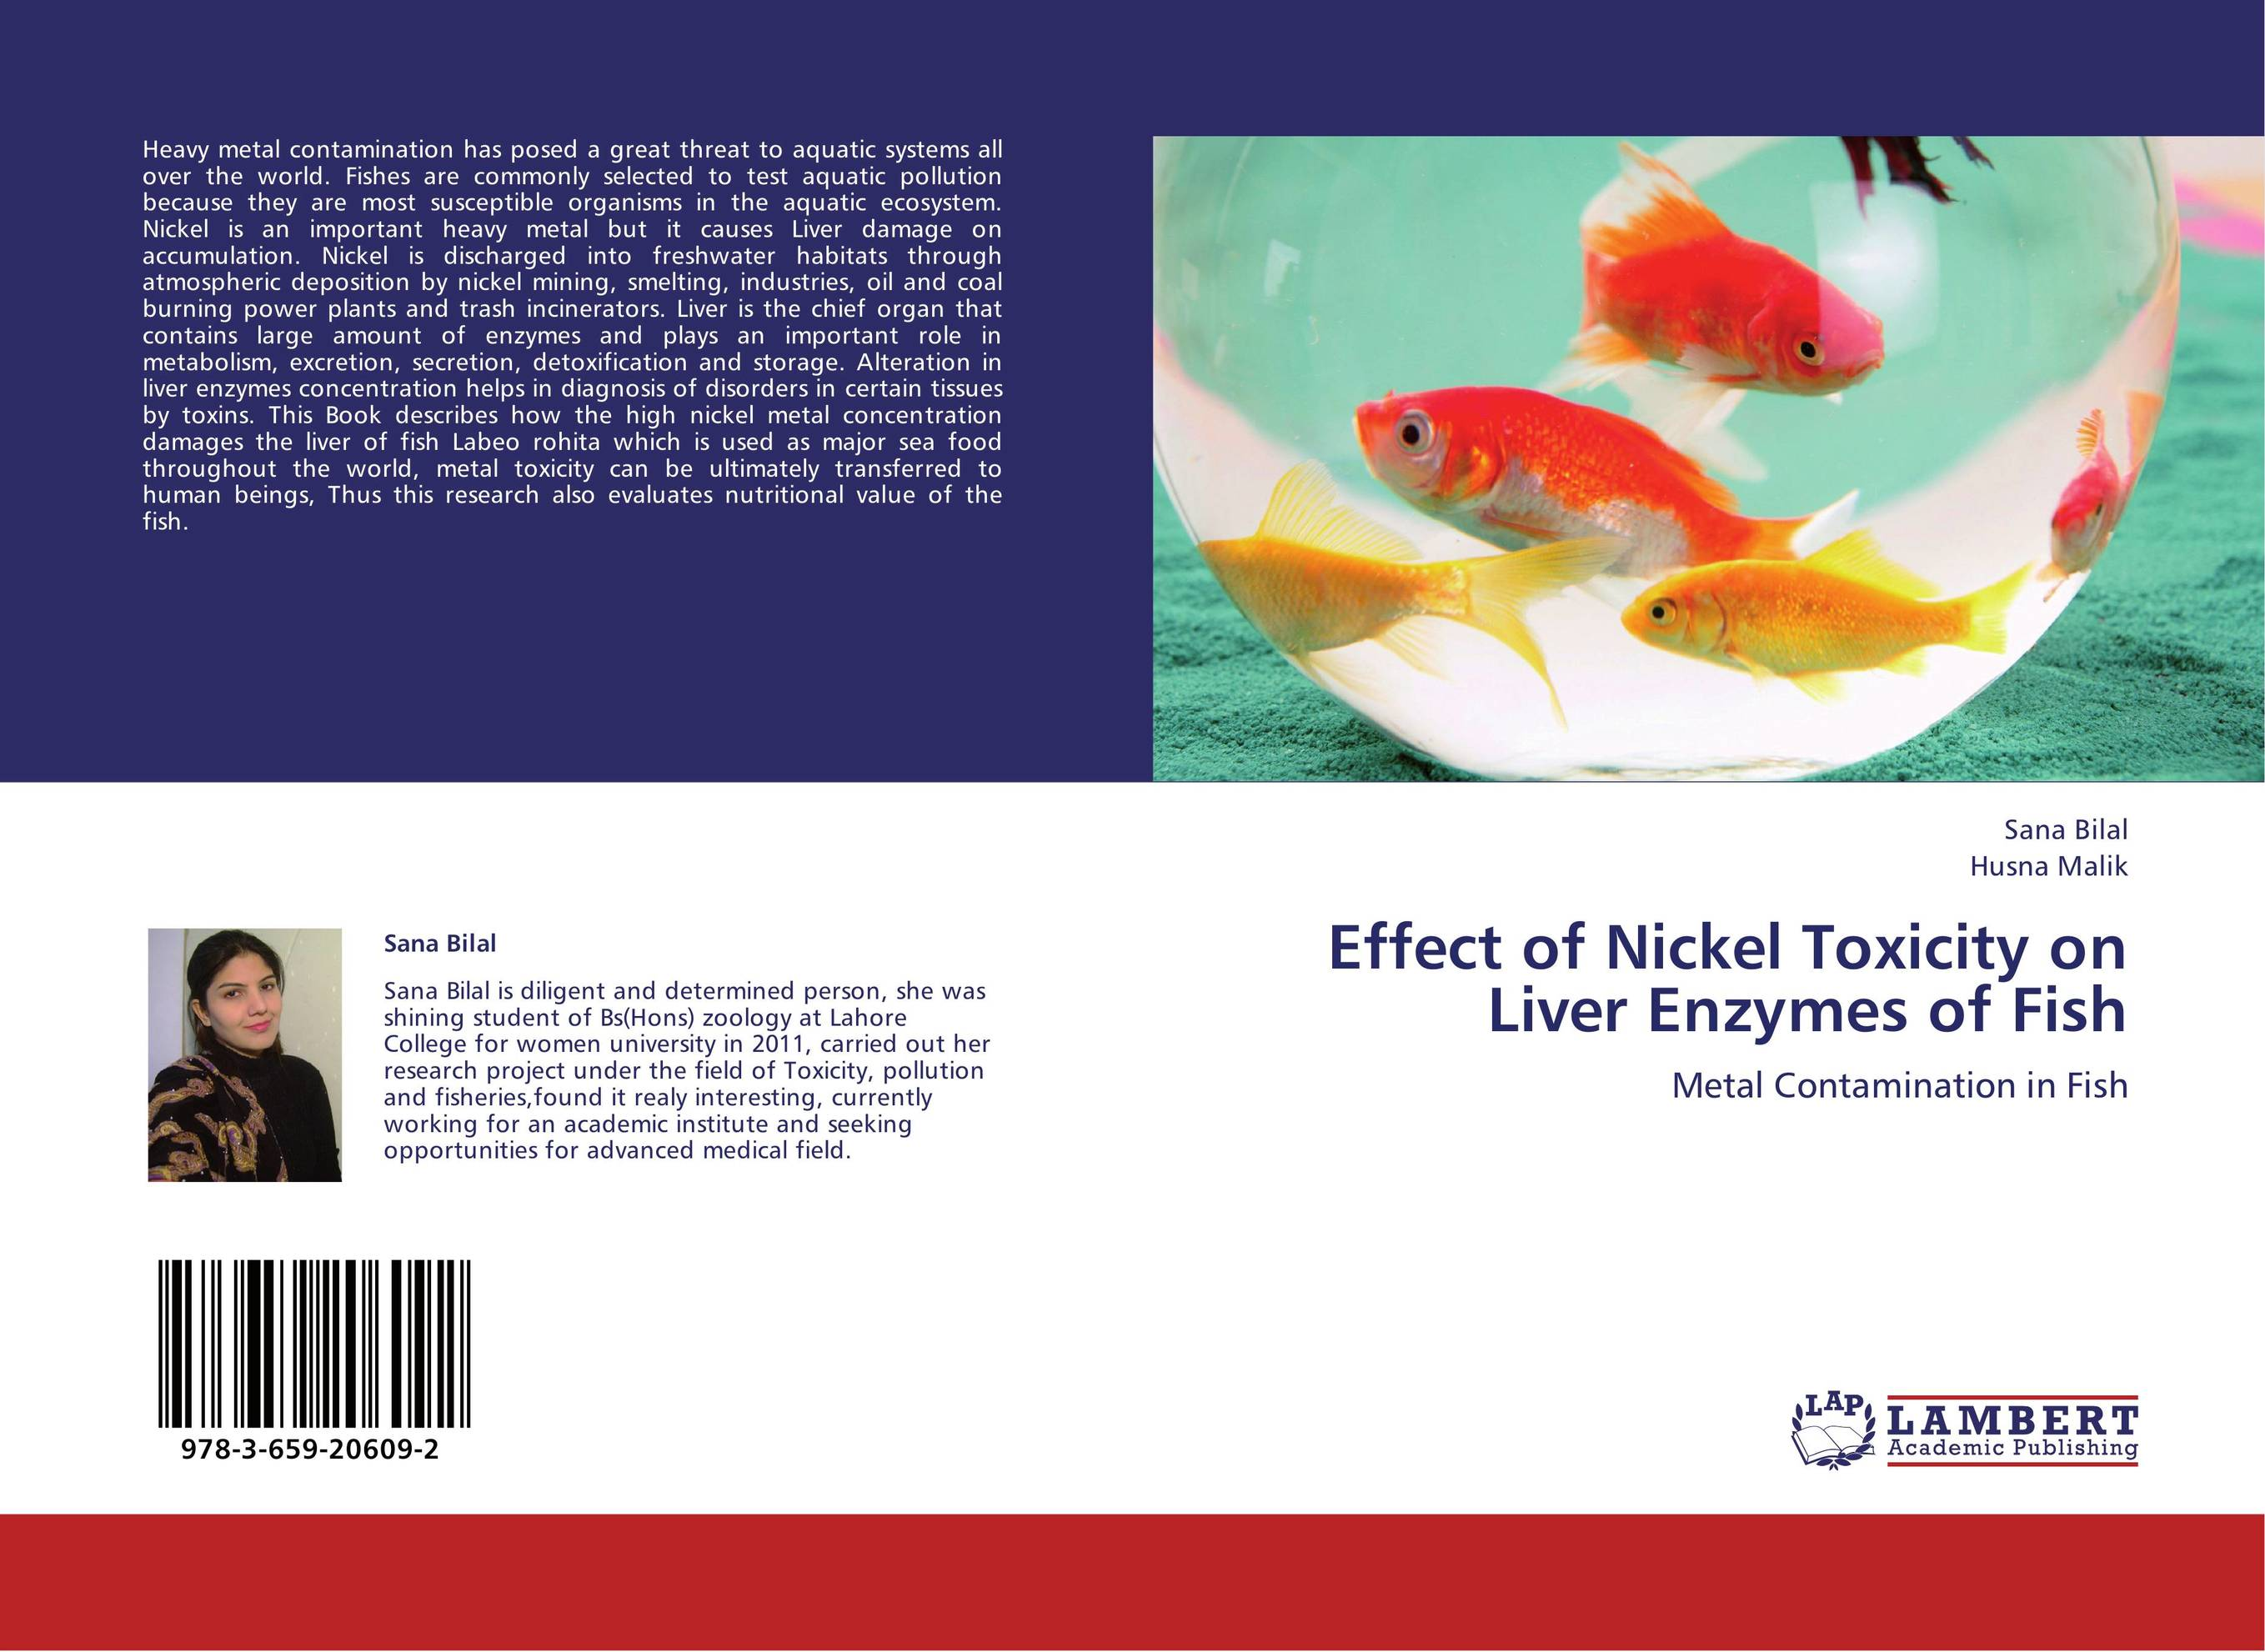 determination of atrazine in contaminated water biology essay On atrazine removal from contaminated water gas chromatographic method of atrazine determination atrazine measurement at low concentration was made in gas chromato-.